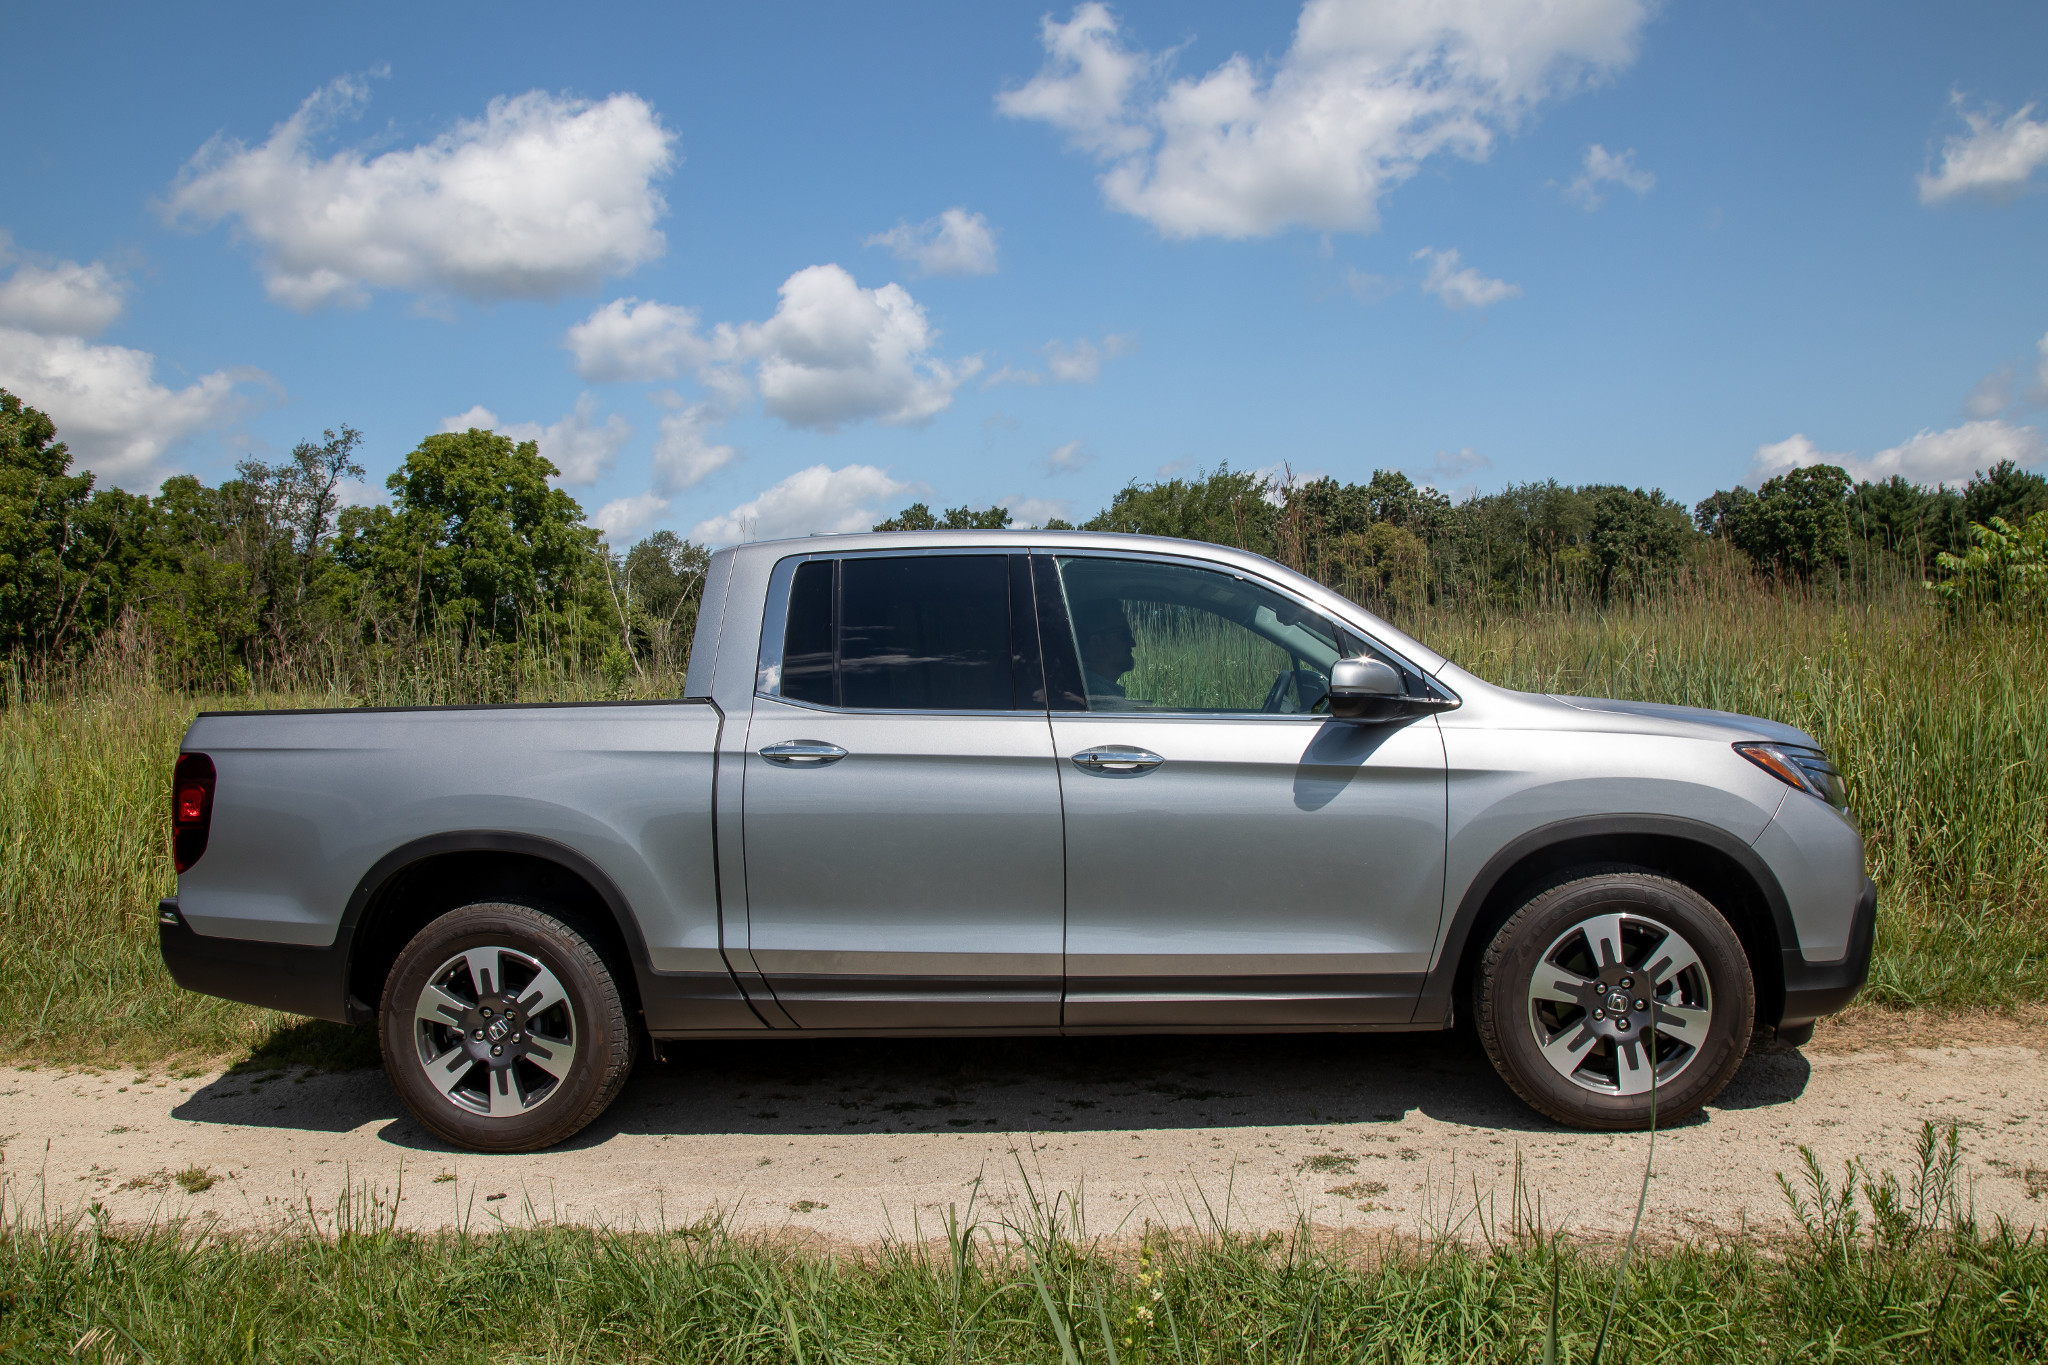 2020 Honda Ridgeline: Which Should You Buy, 2019 or 2020?